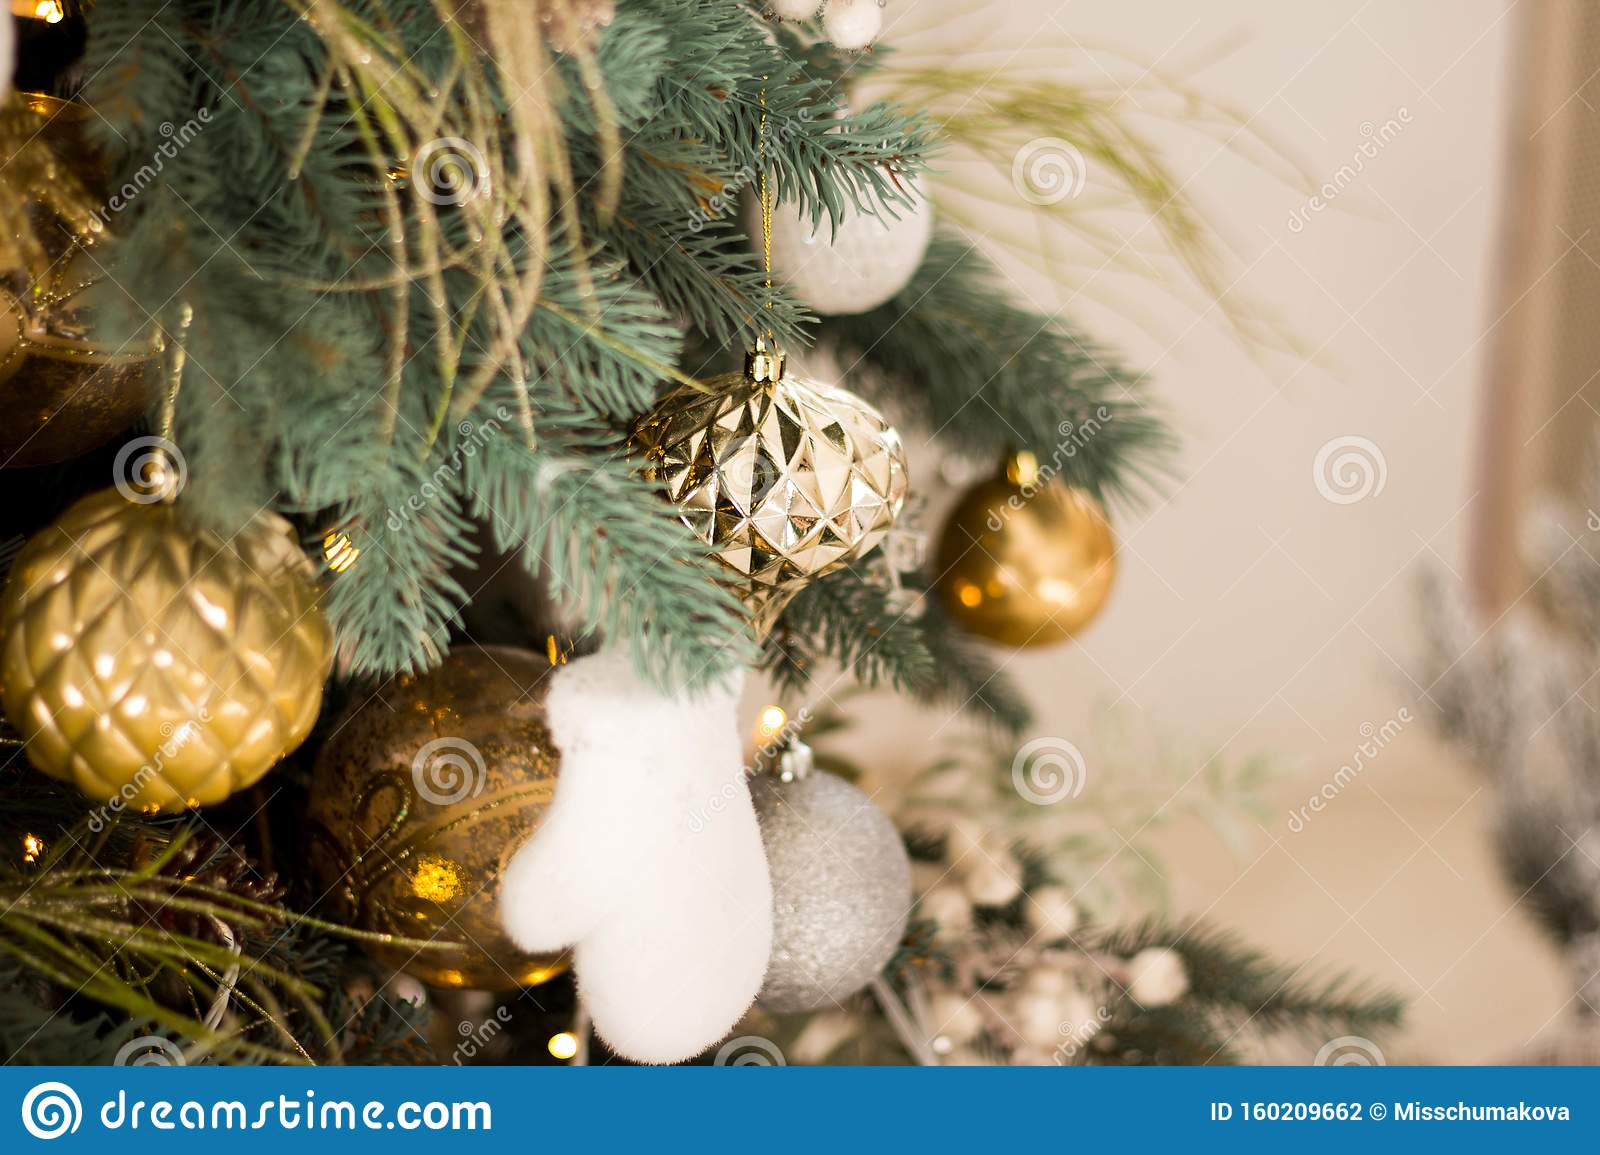 beautiful christmas tree festive gold white decor against blurred lights background closeup wallpaper card copyspace your 160209662